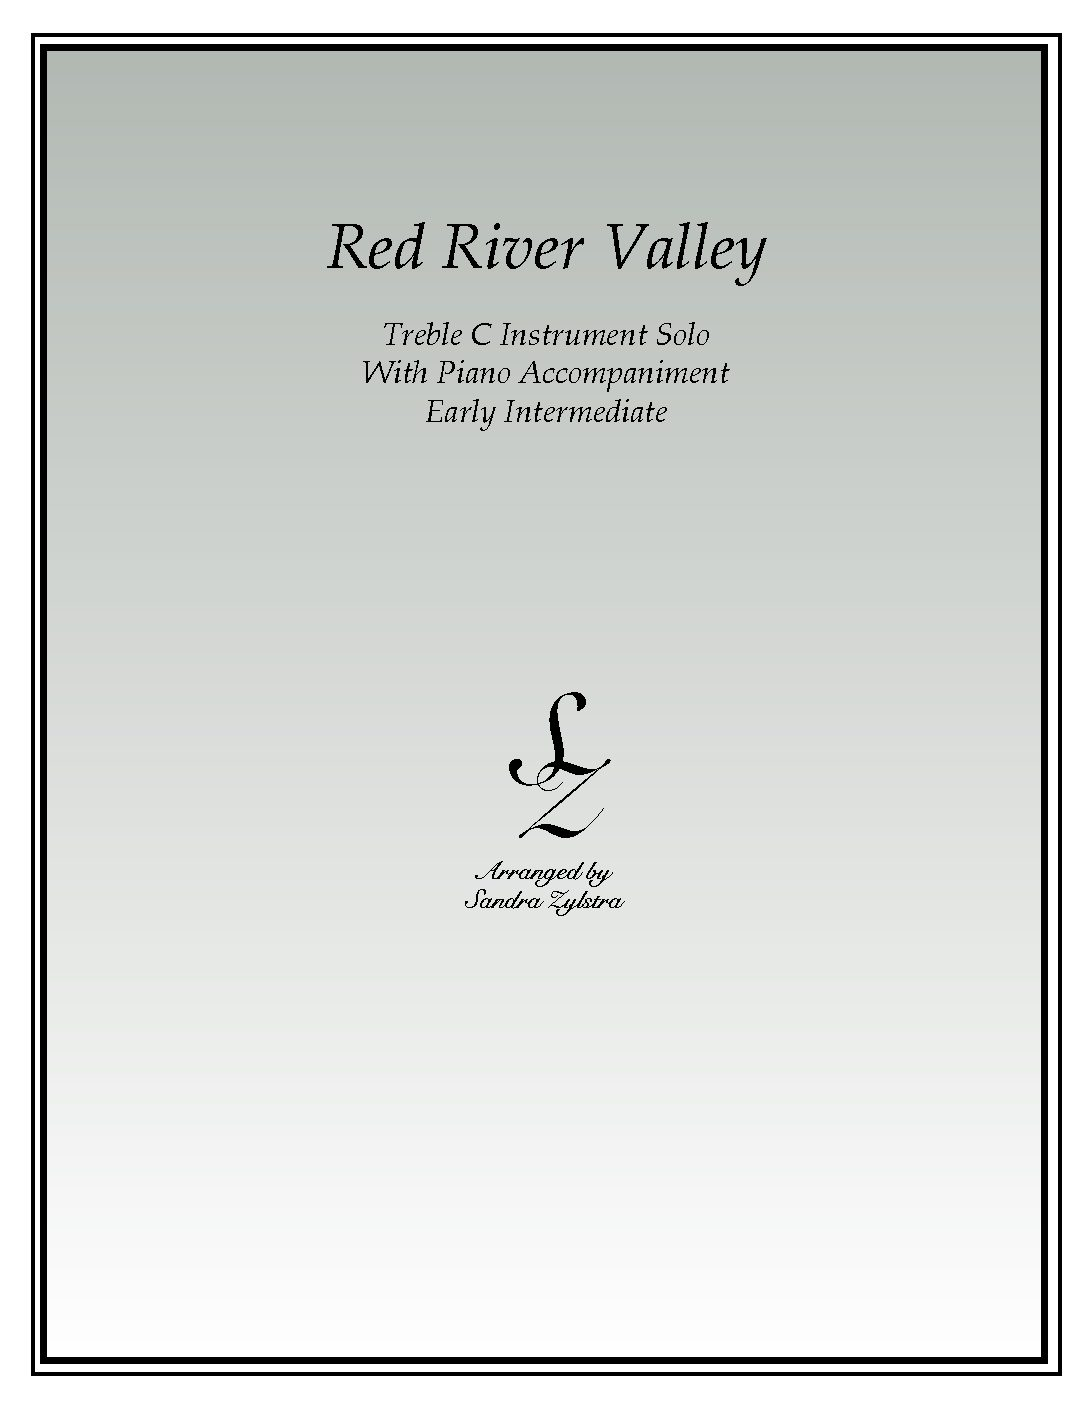 Red River Valley -Treble C Instrument Solo